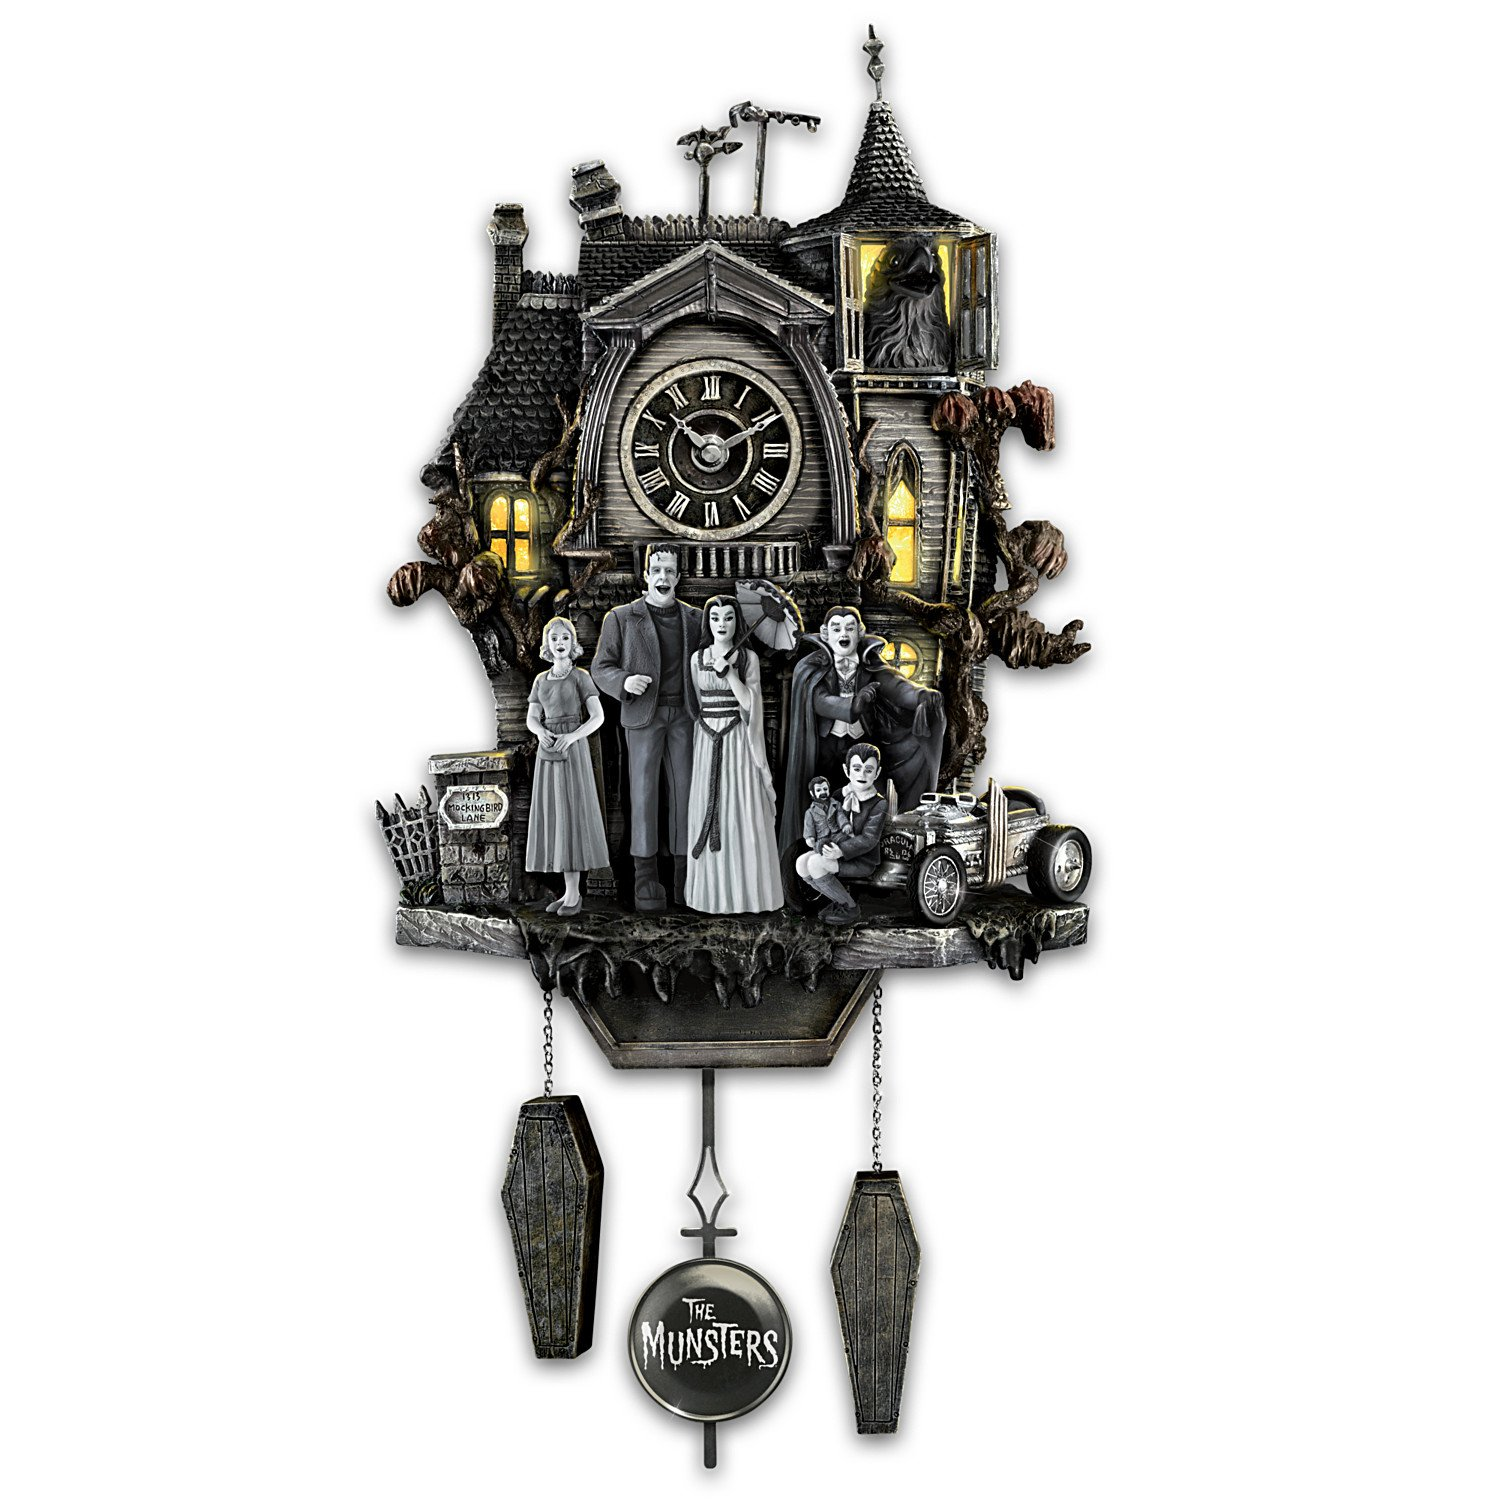 The Munsters Cuckoo Clock with Flickering Lights and Music by The Bradford Exchange by Bradford Exchange